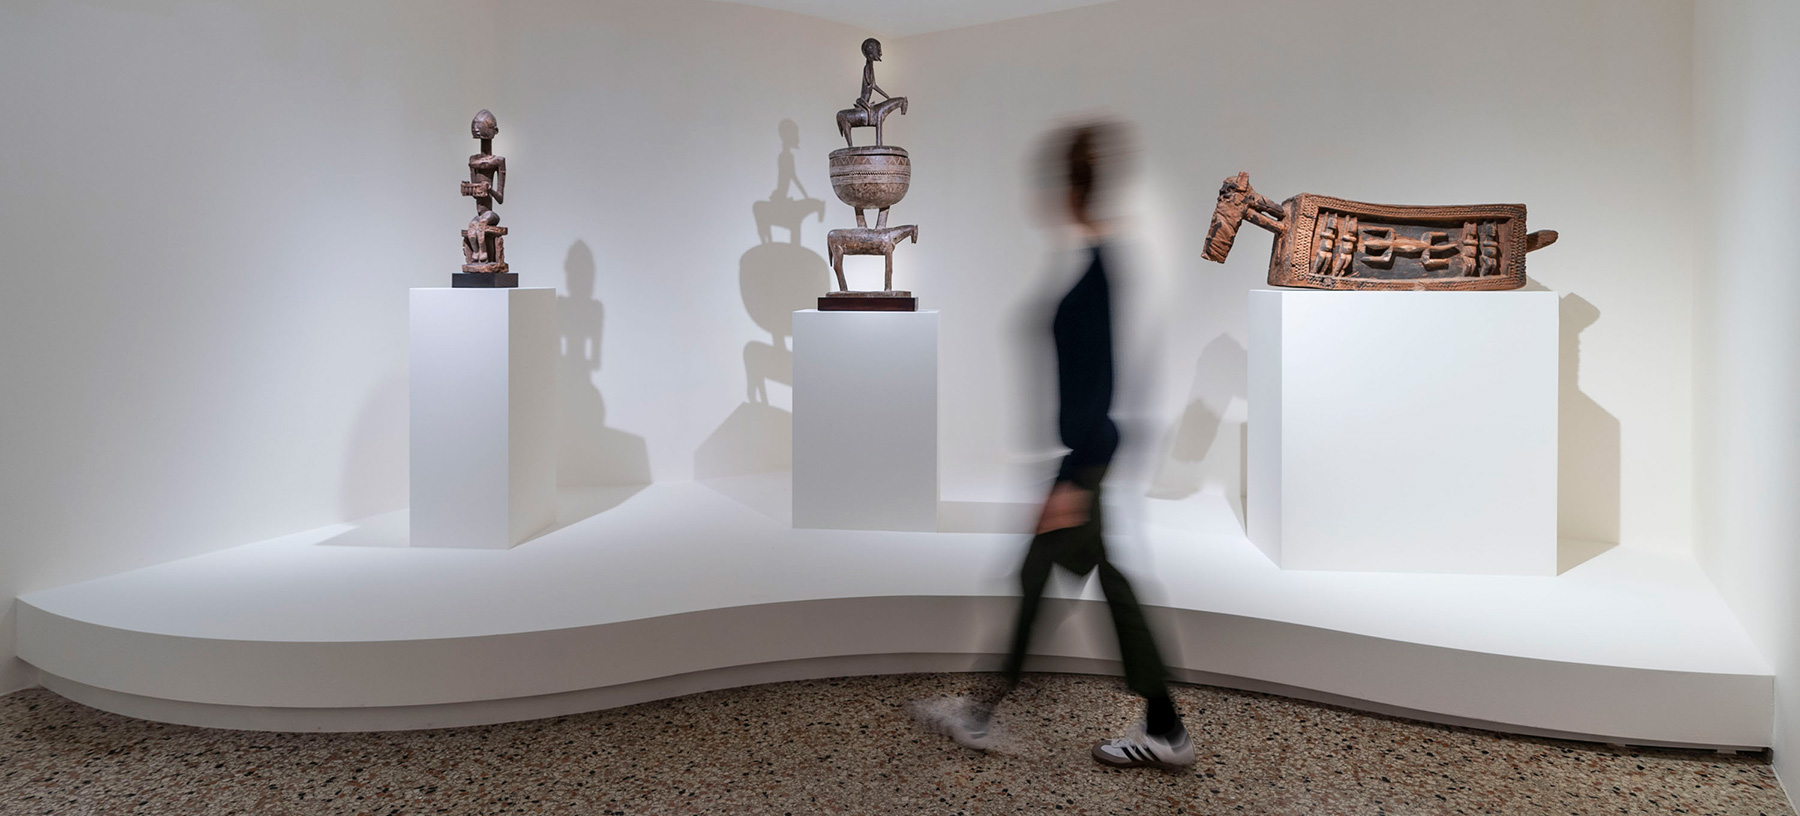 Migrating Objects: Arts of Africa, Oceania, and the Americas in the Peggy Guggenheim Collection objects by Dogon artists Mali